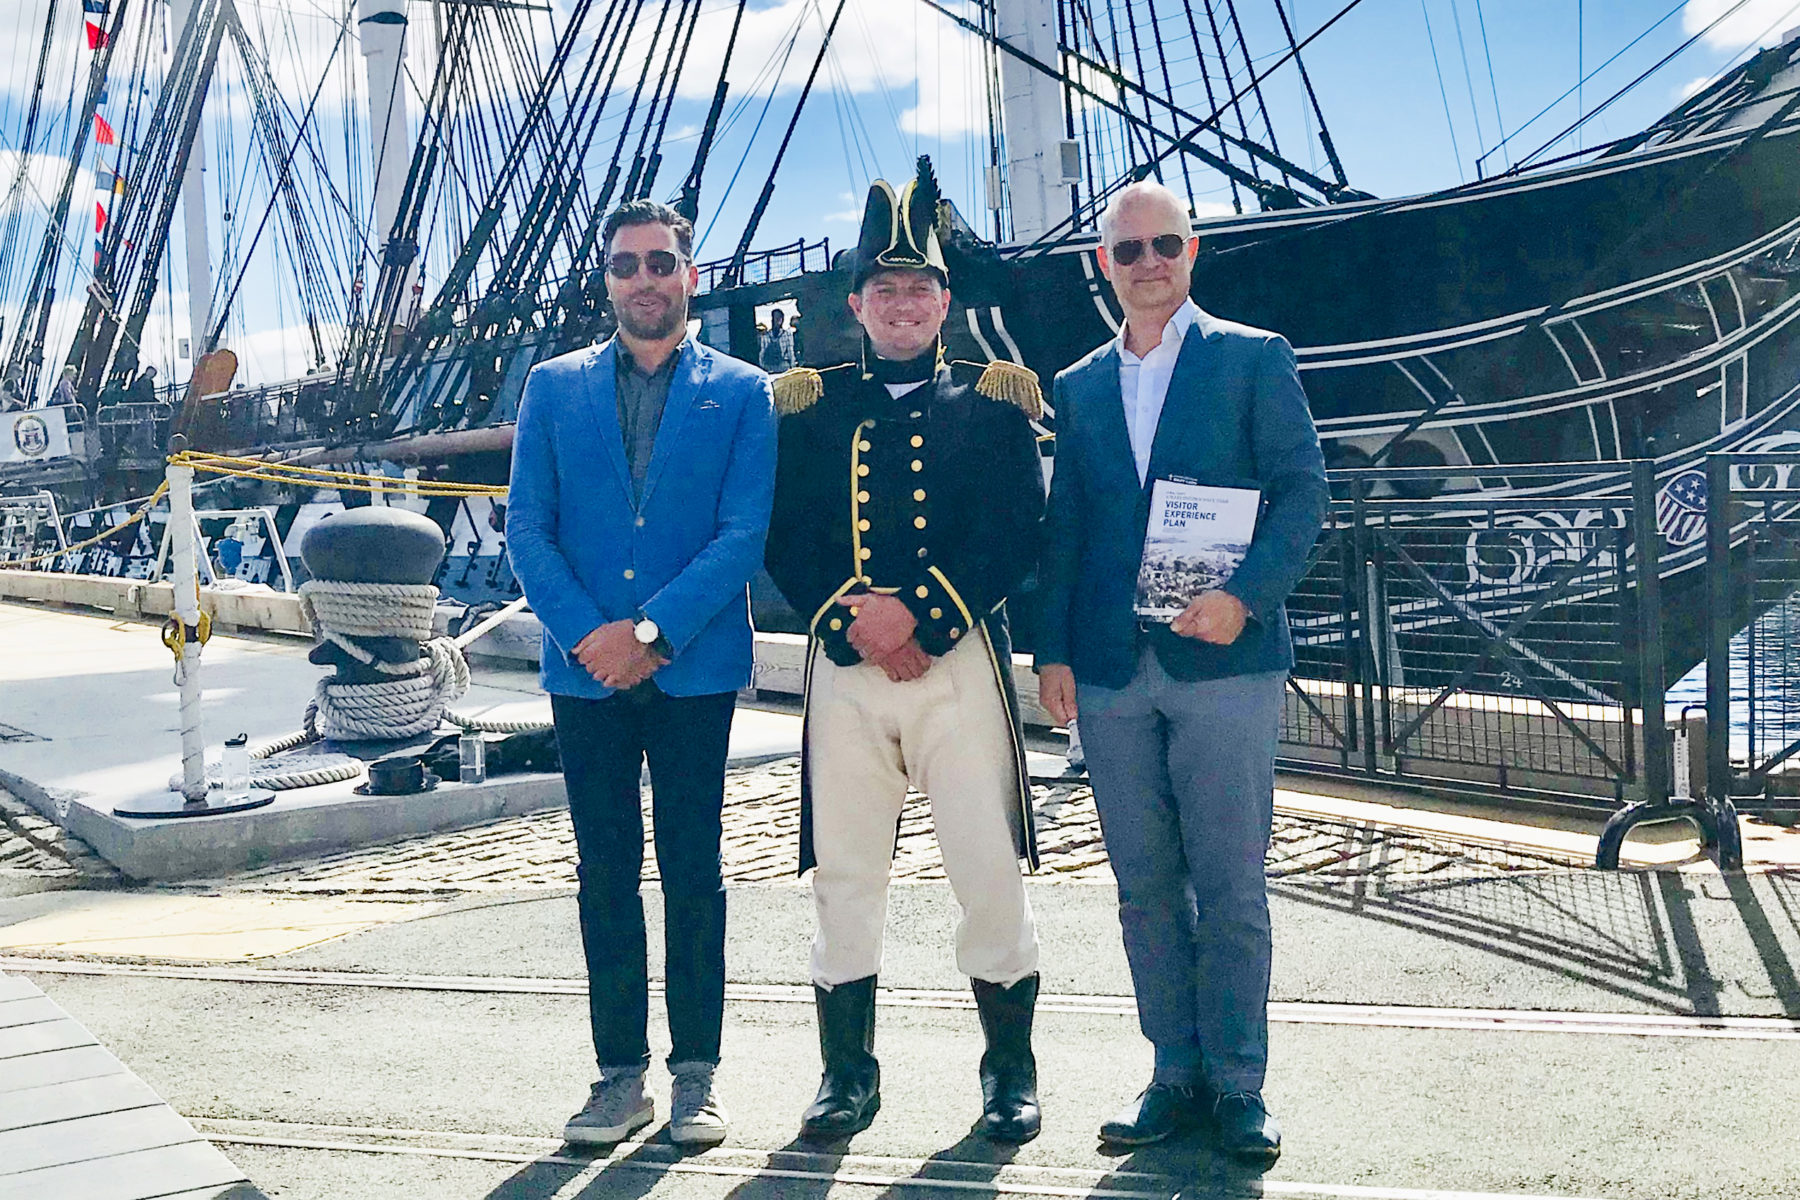 three men stand in front of a ship